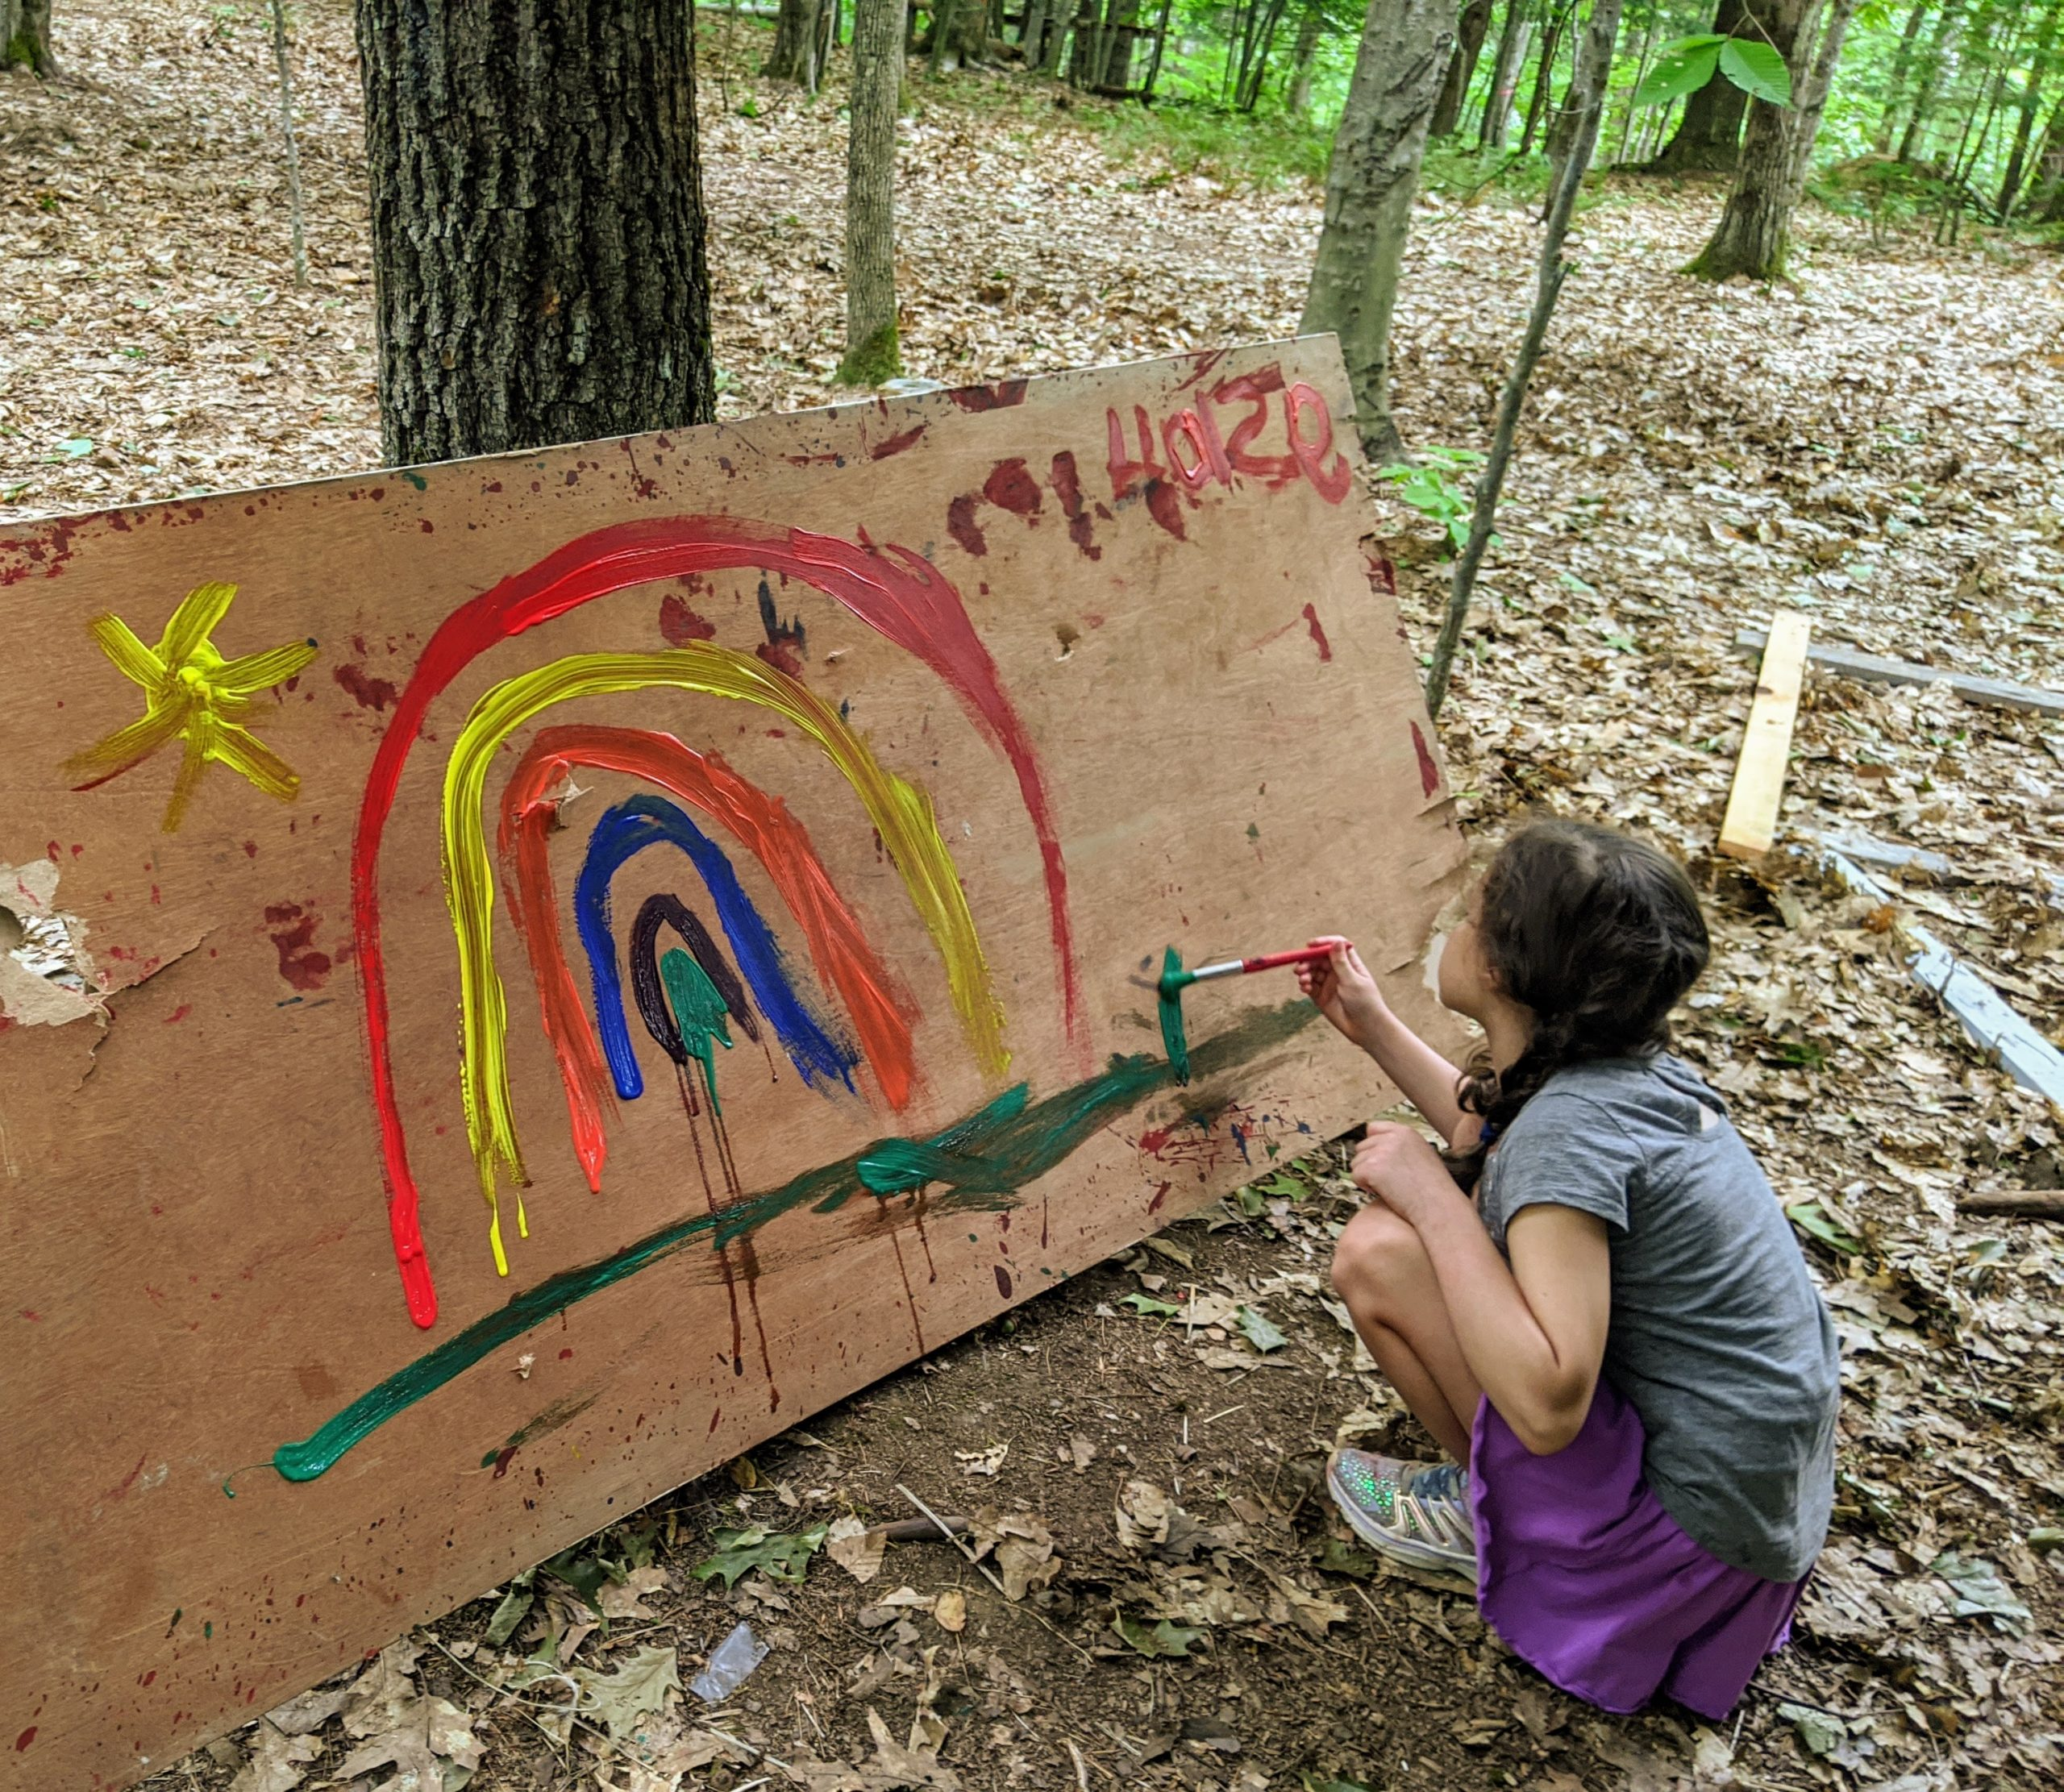 Extreme Art - TimberNook of Greater Portland, Maine